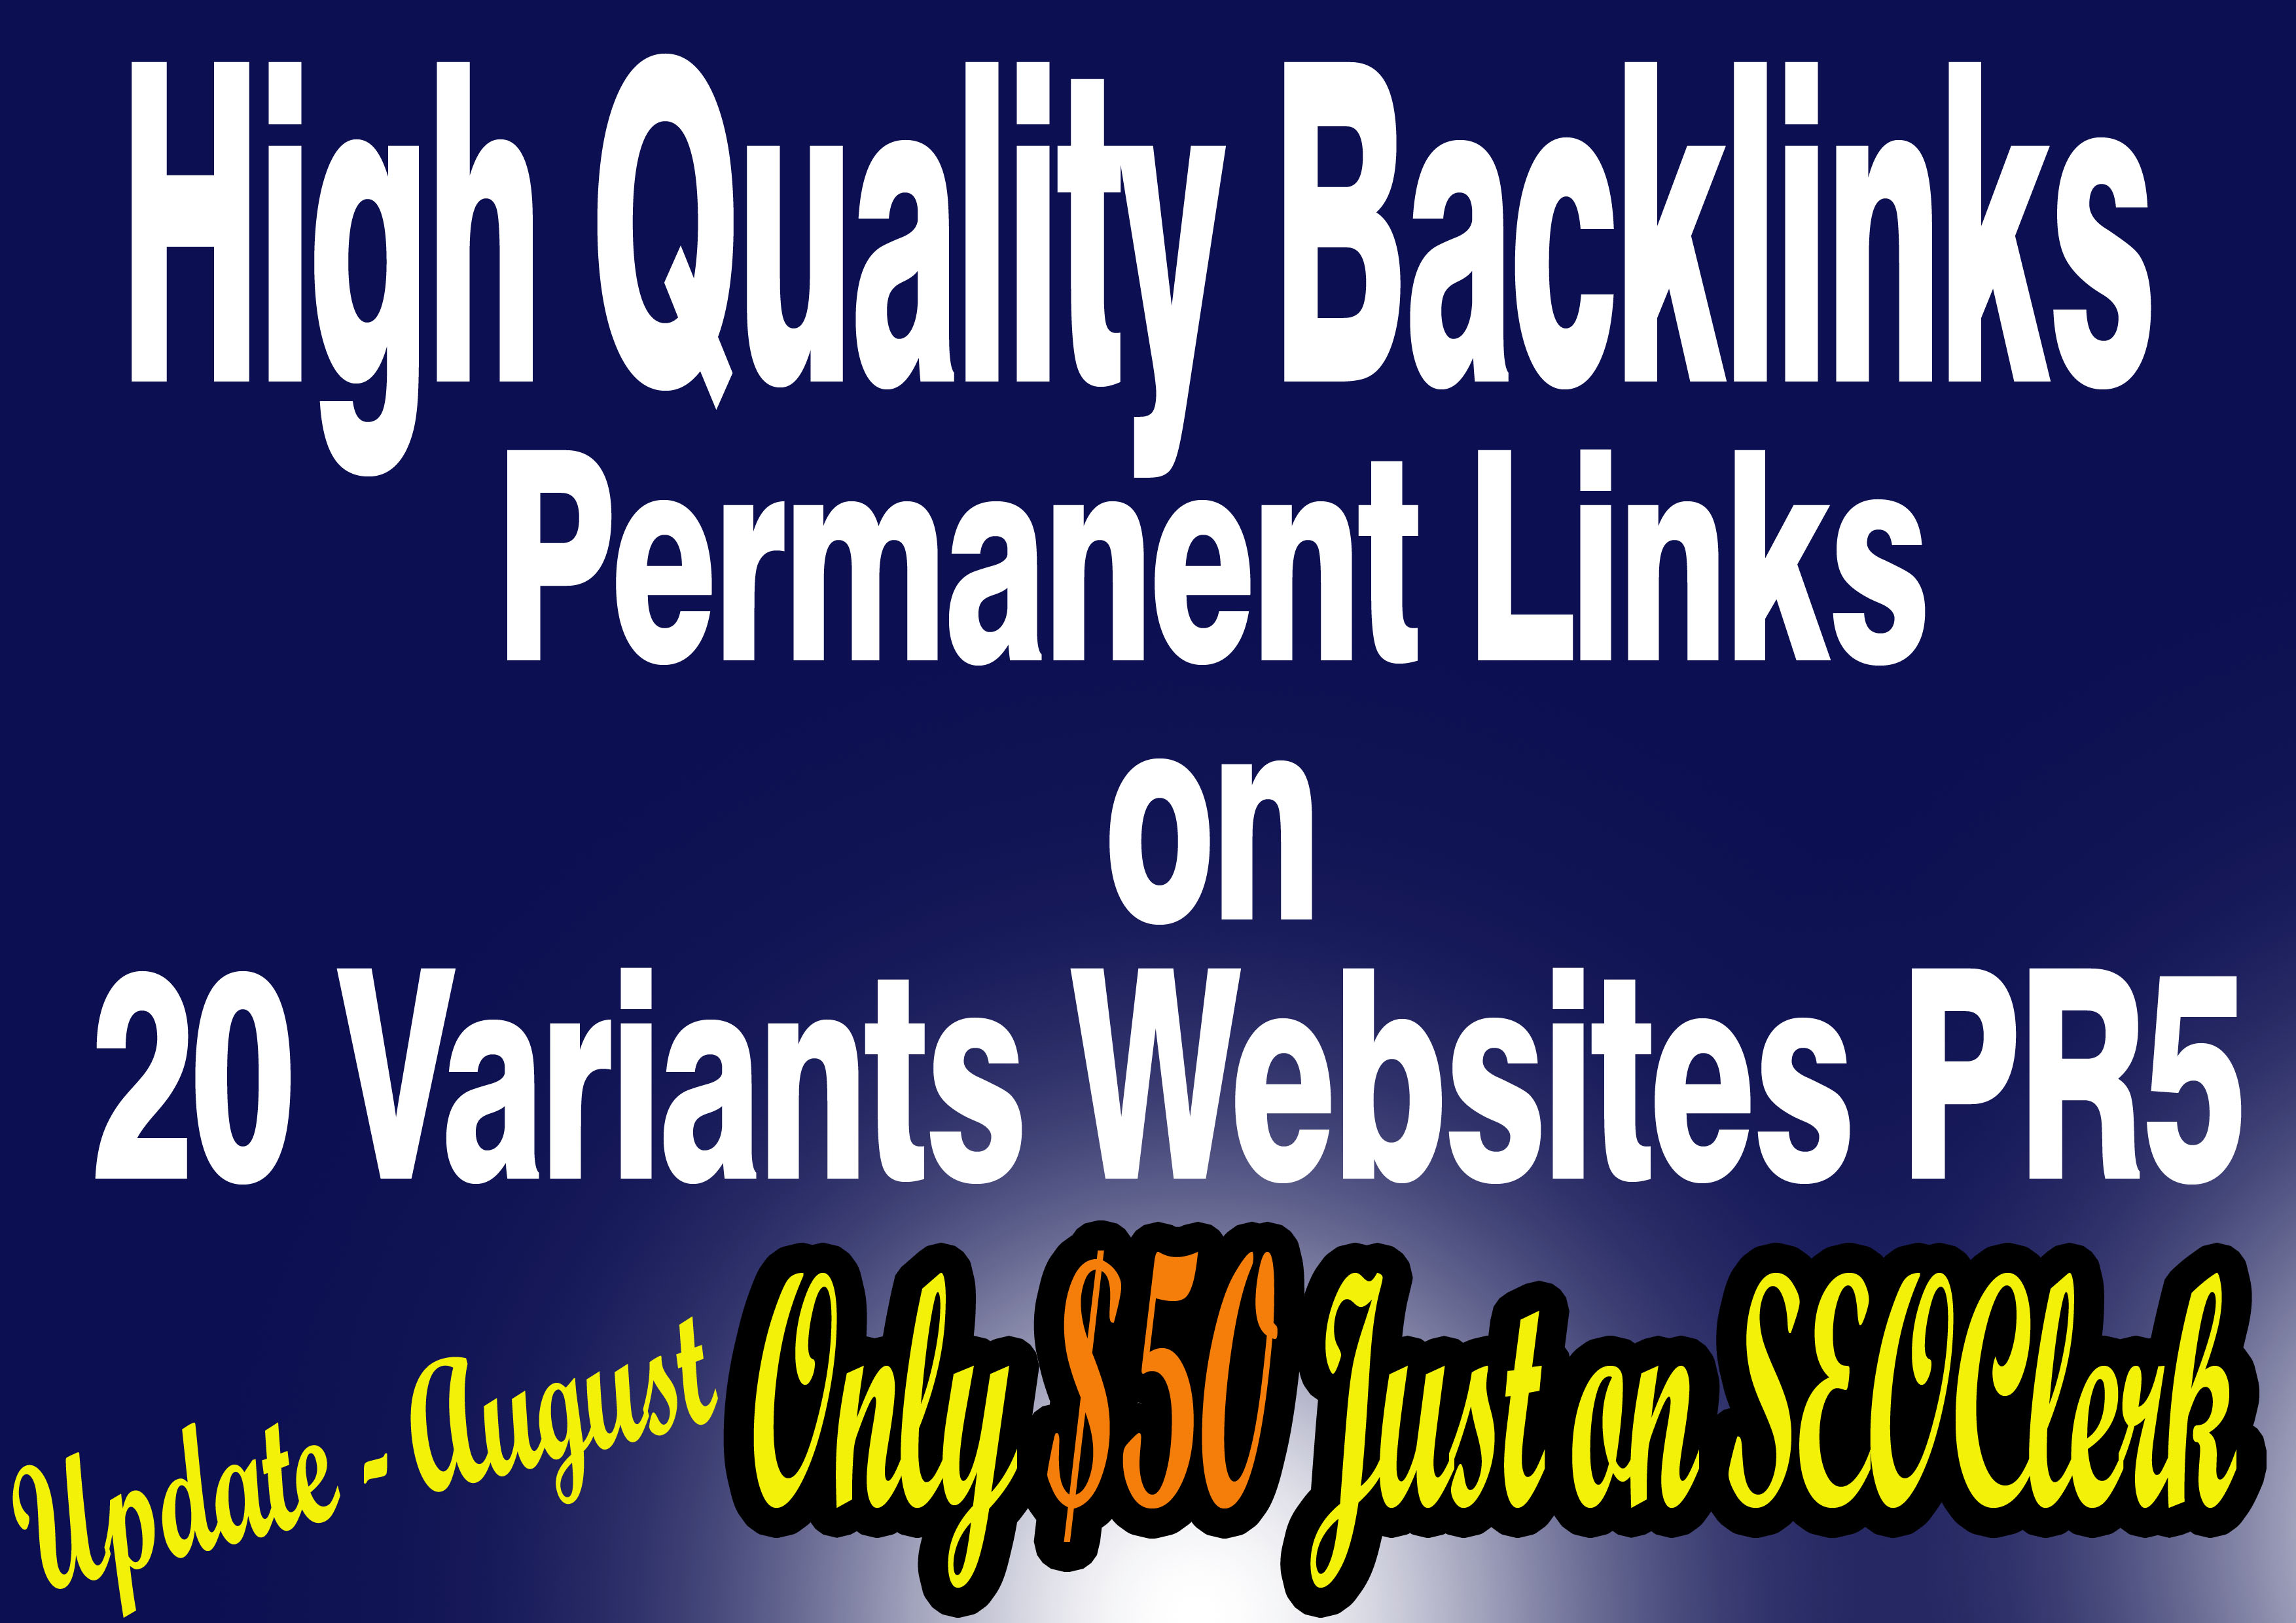 I will give you permanent blogroll link on 20 websites PR5